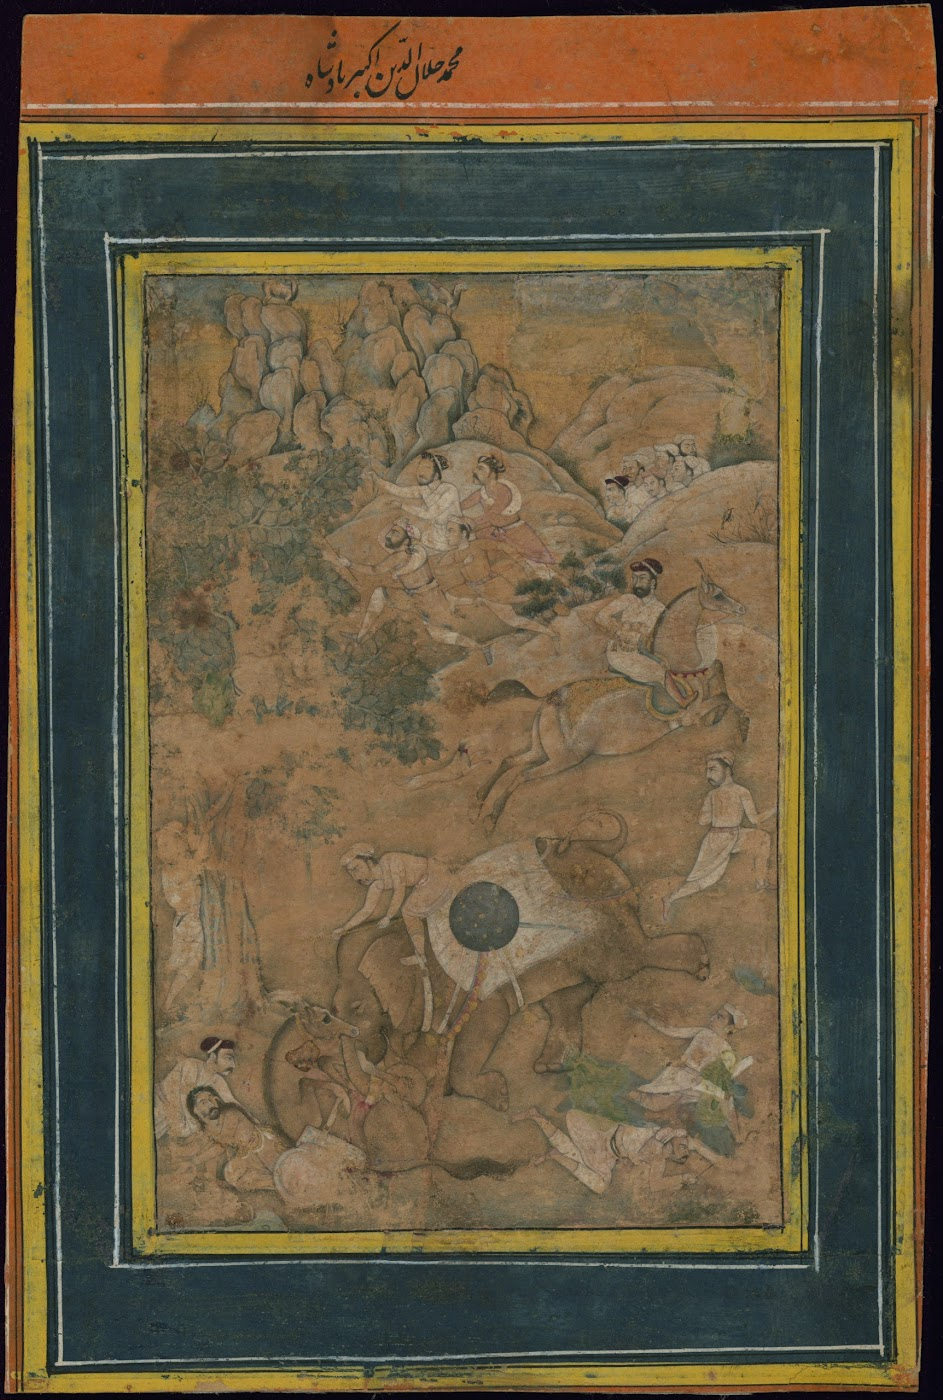 Emperor Akbar is Riding and Controlling his Elephant, which has Gone into Heat (Must) - Mughal Painting, Circa 17th Century